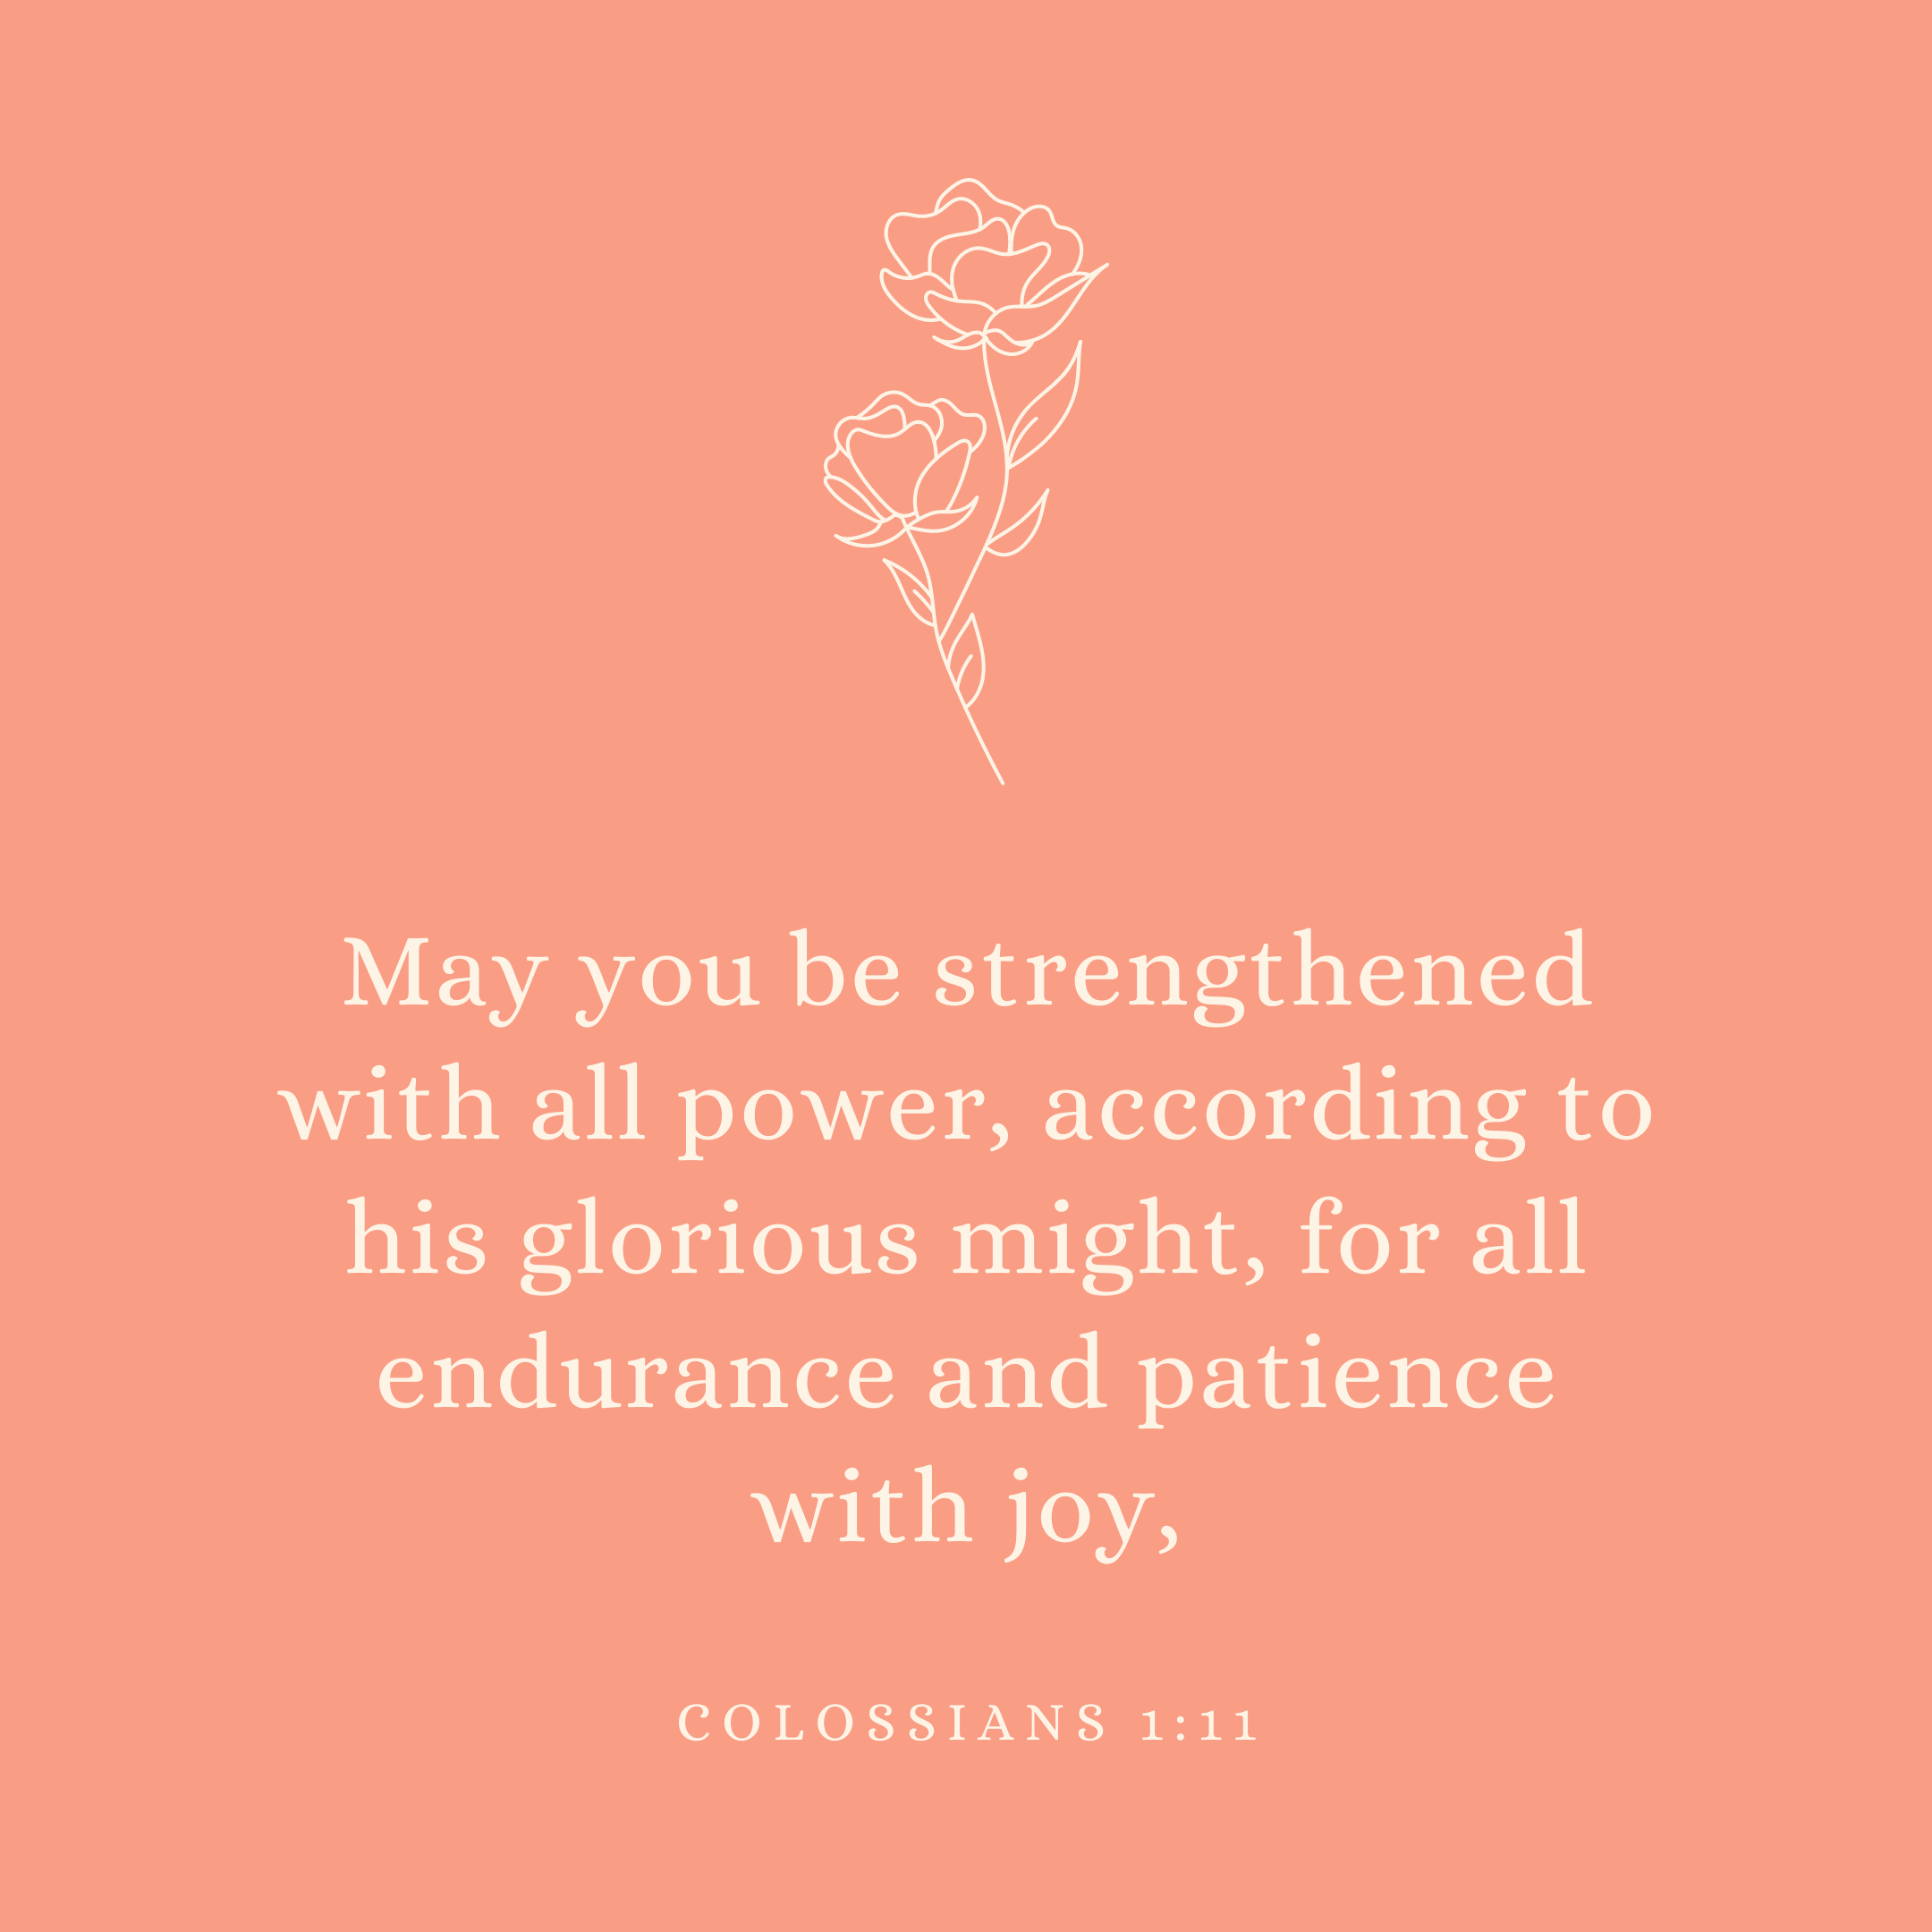 Colossians 1:11 May you be strengthened with all power, according to his glorious might, for all endurance and patience with joy,